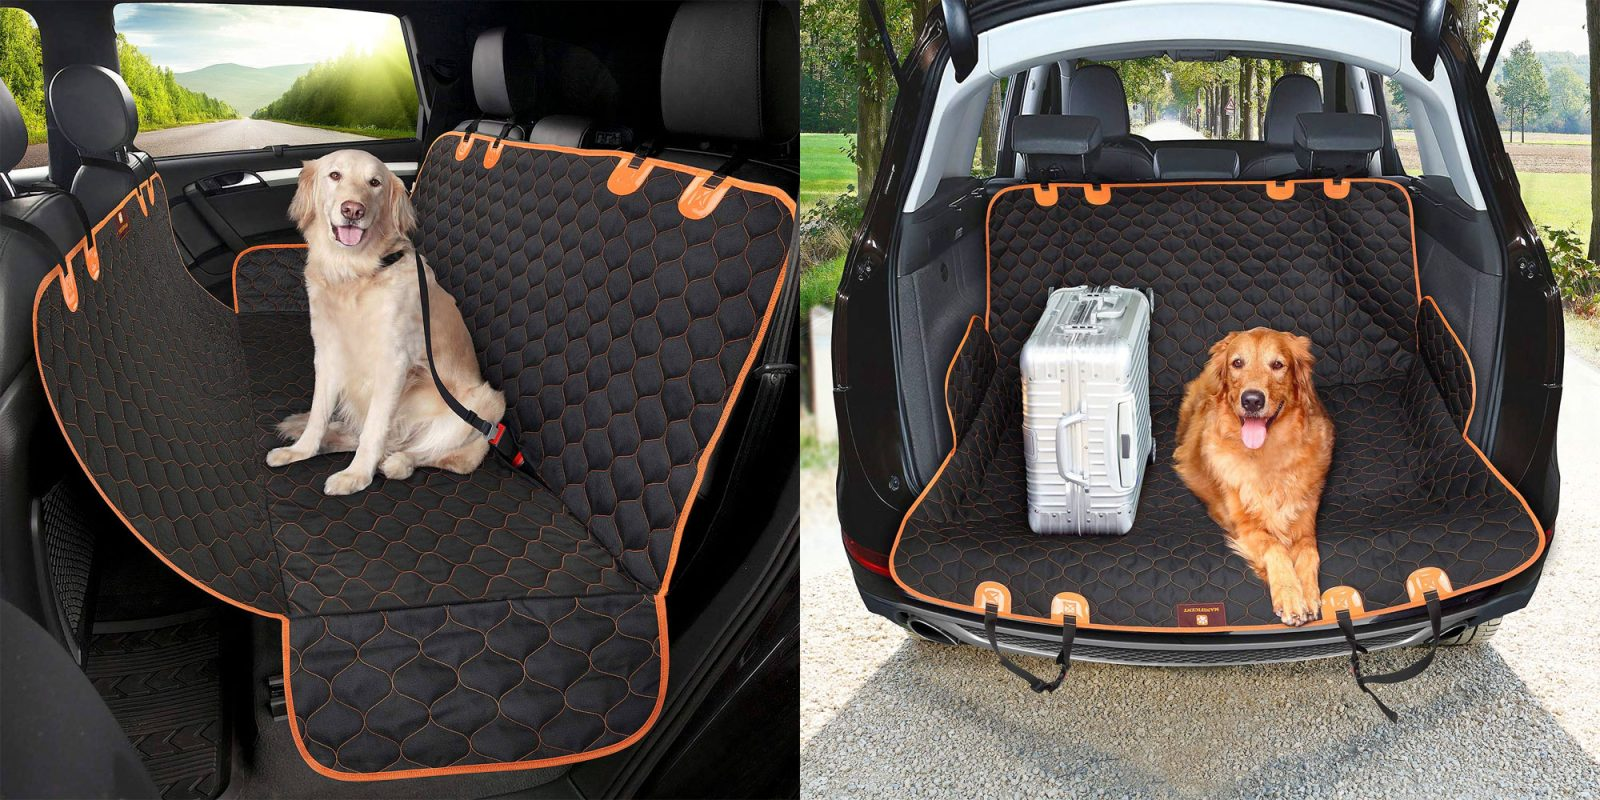 Make cleaning up after your pet in the car a breeze w/ this